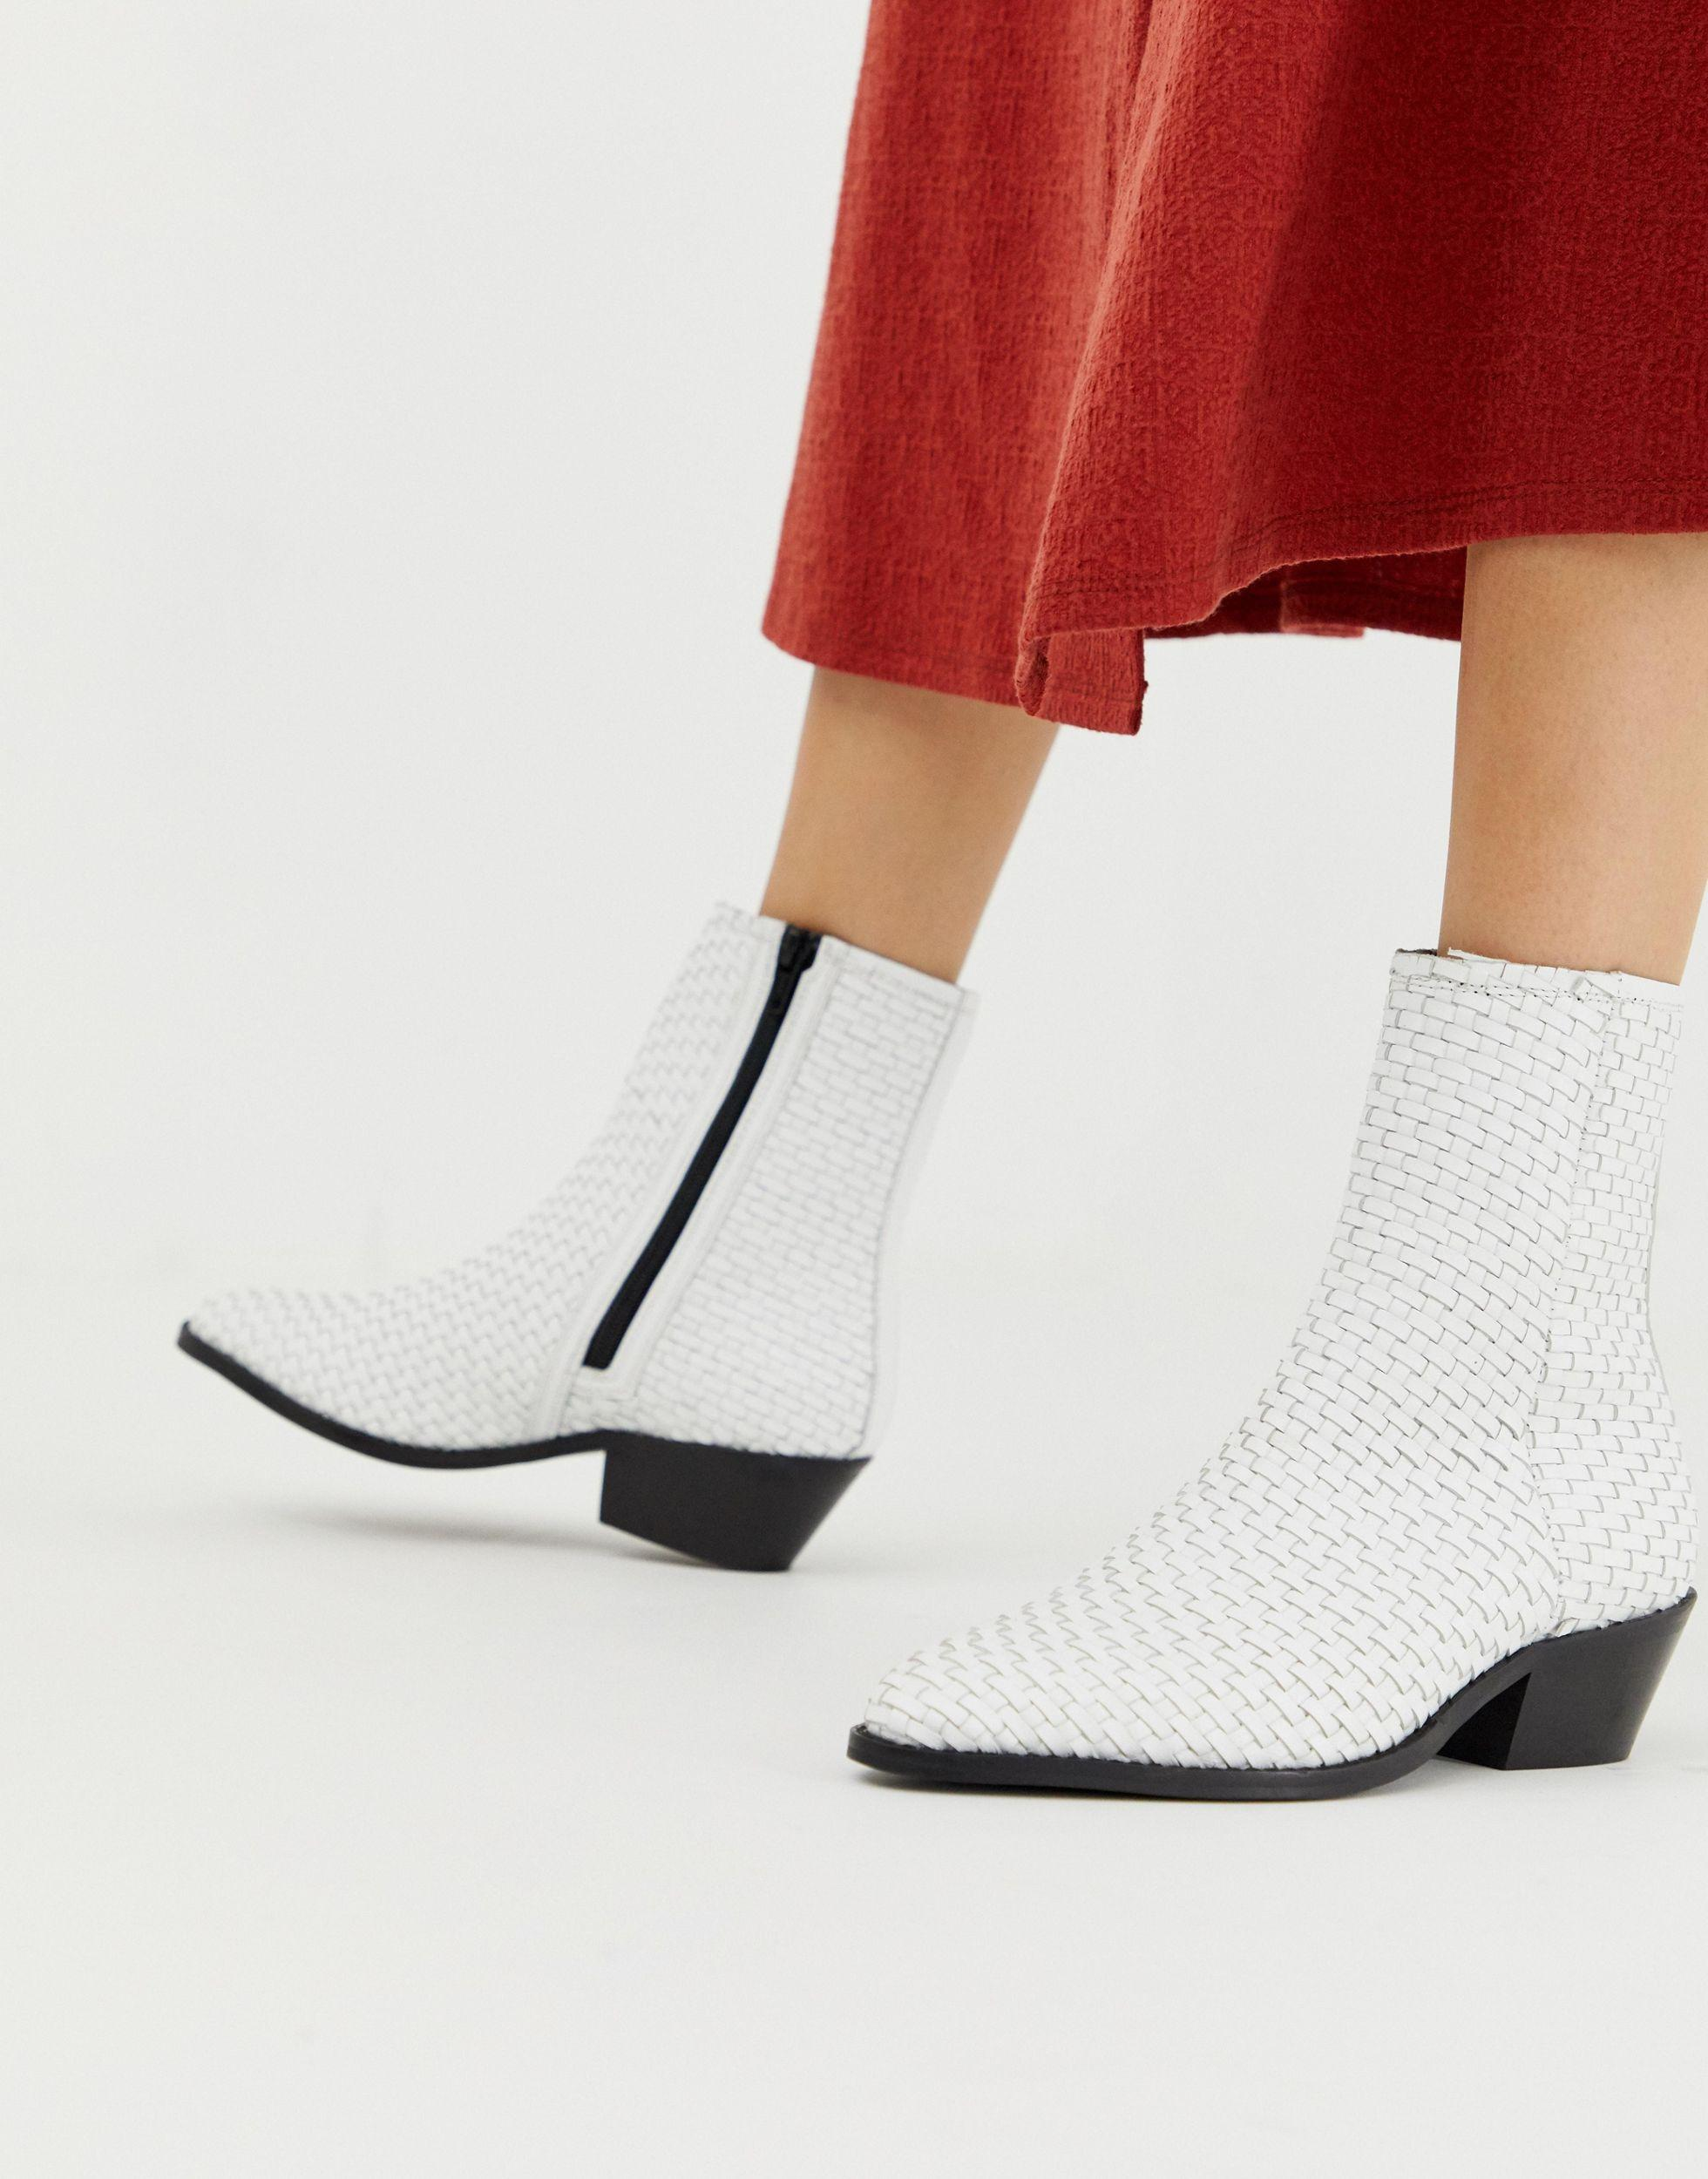 ASOS Austin Leather Woven Boots in